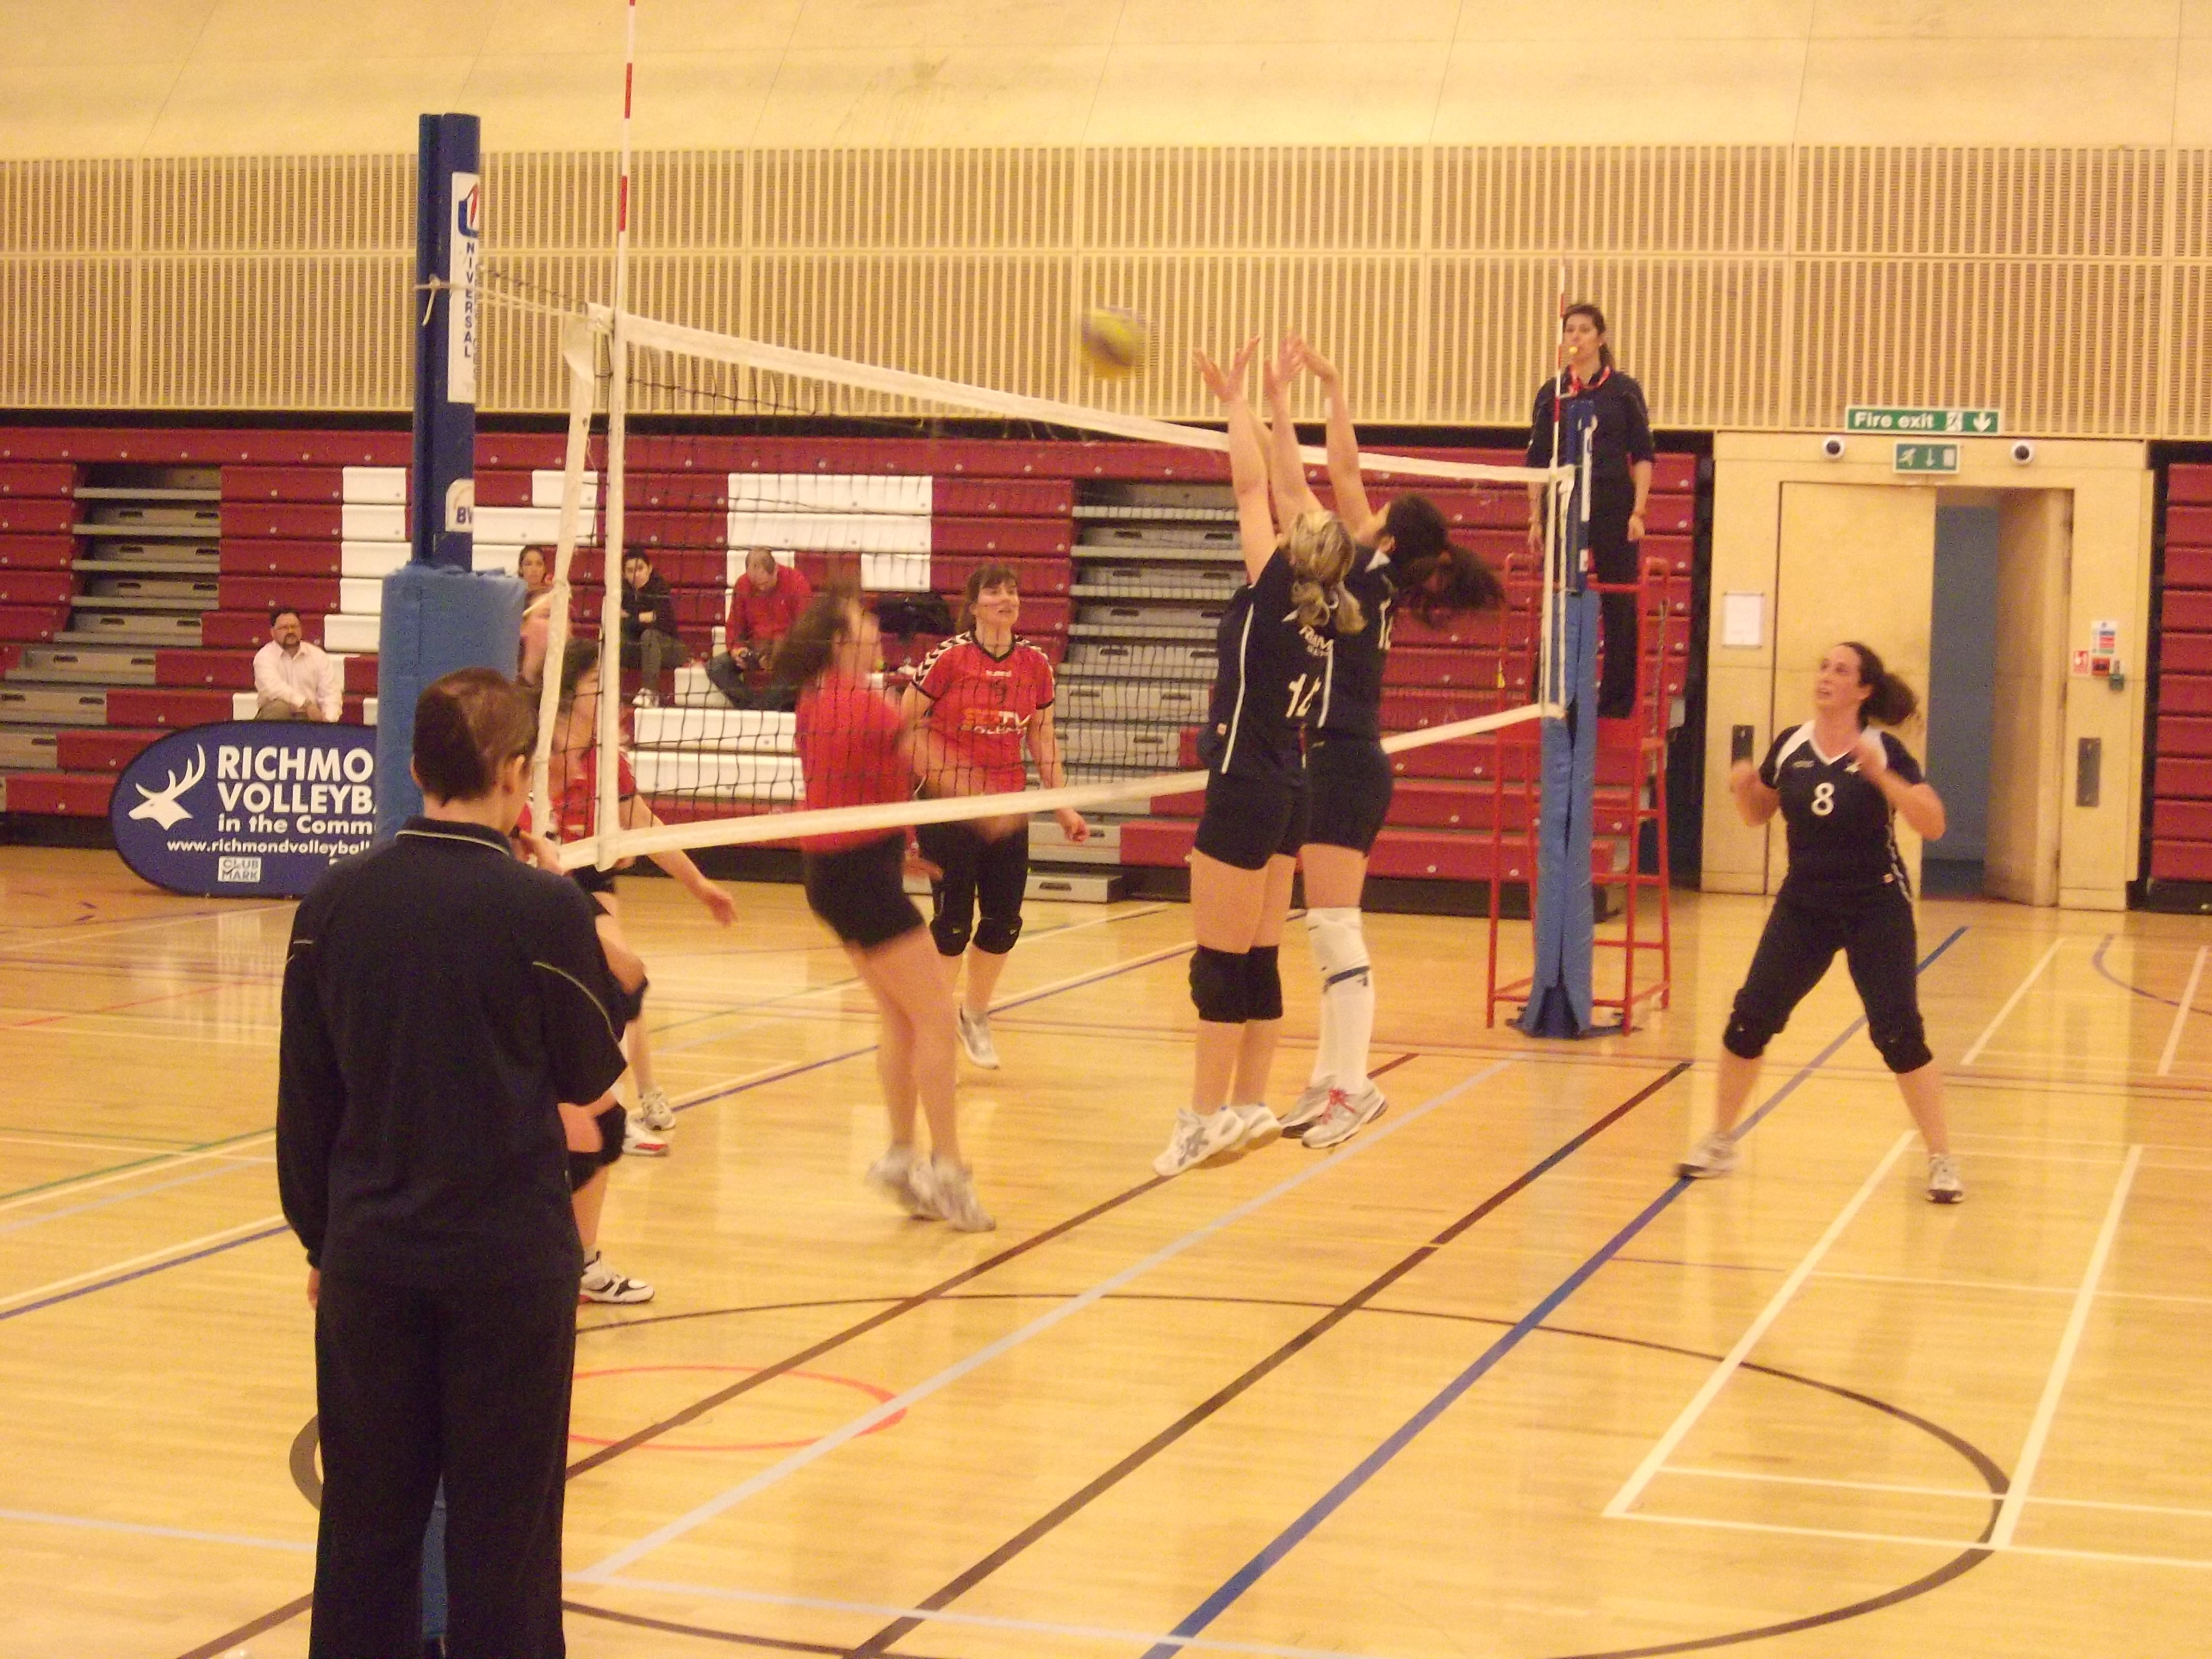 South London Volleyball League Richmond Volleyball